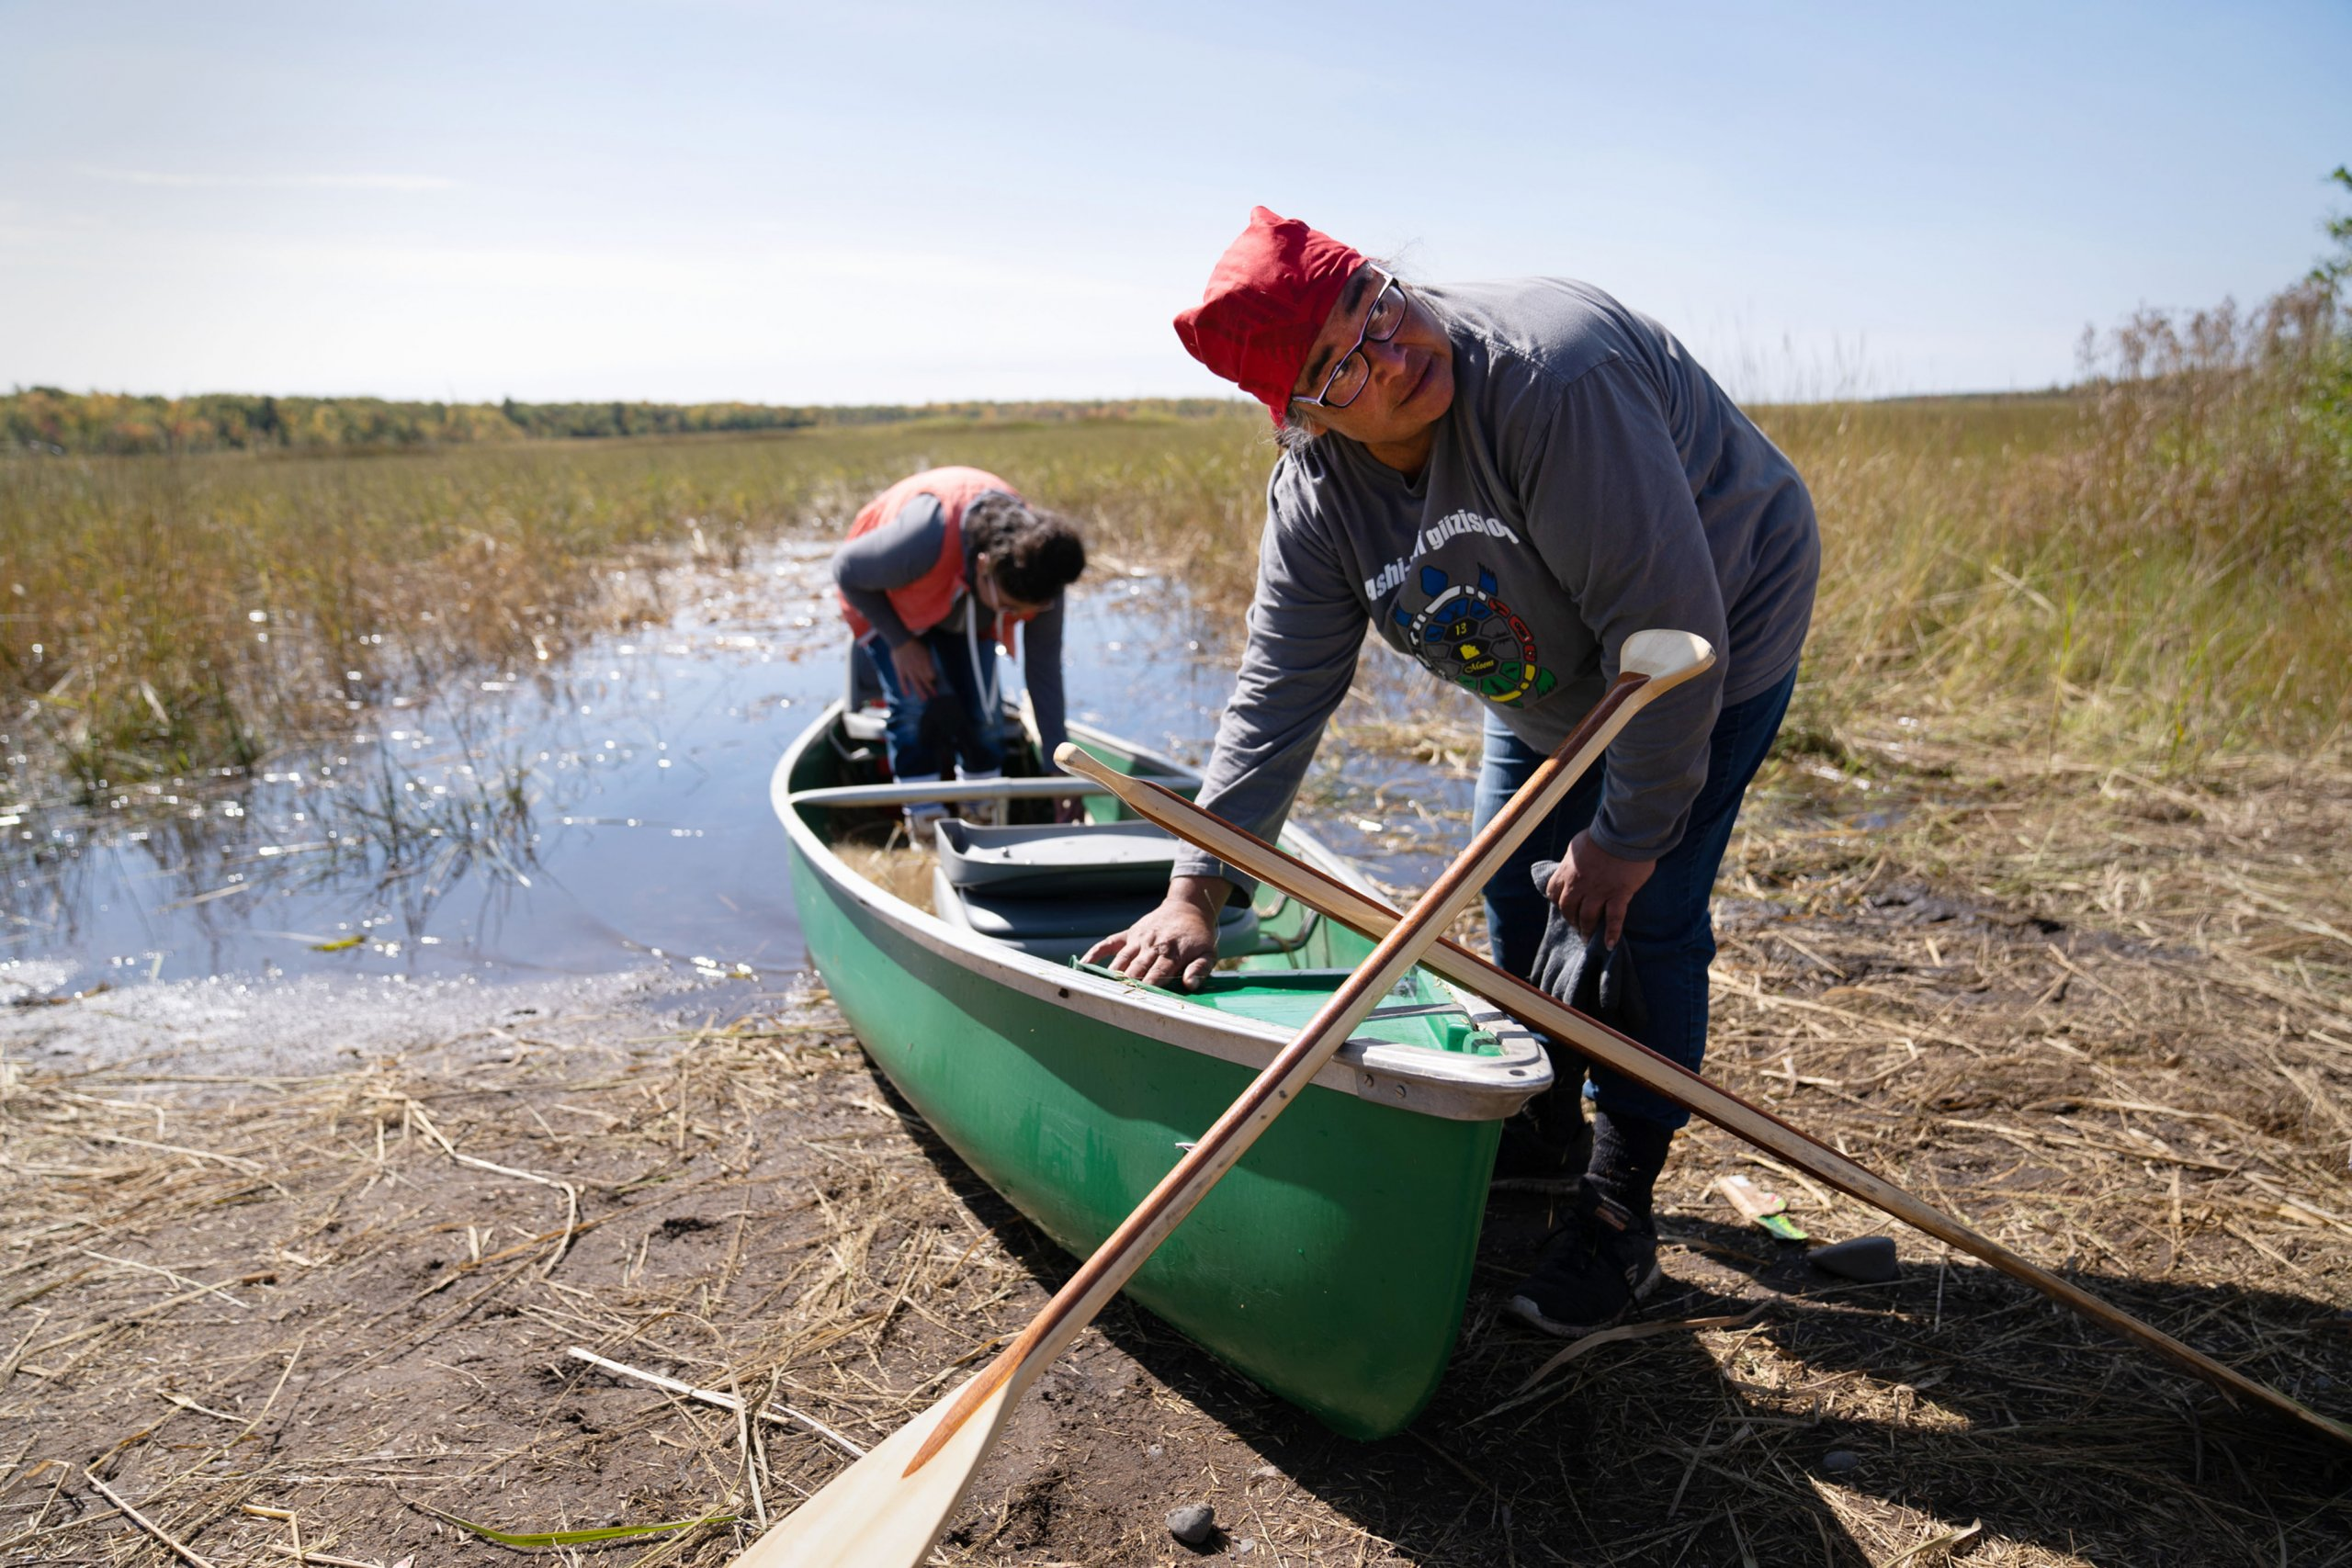 Native Americans in Minnesota Keep COVID-19 at Bay